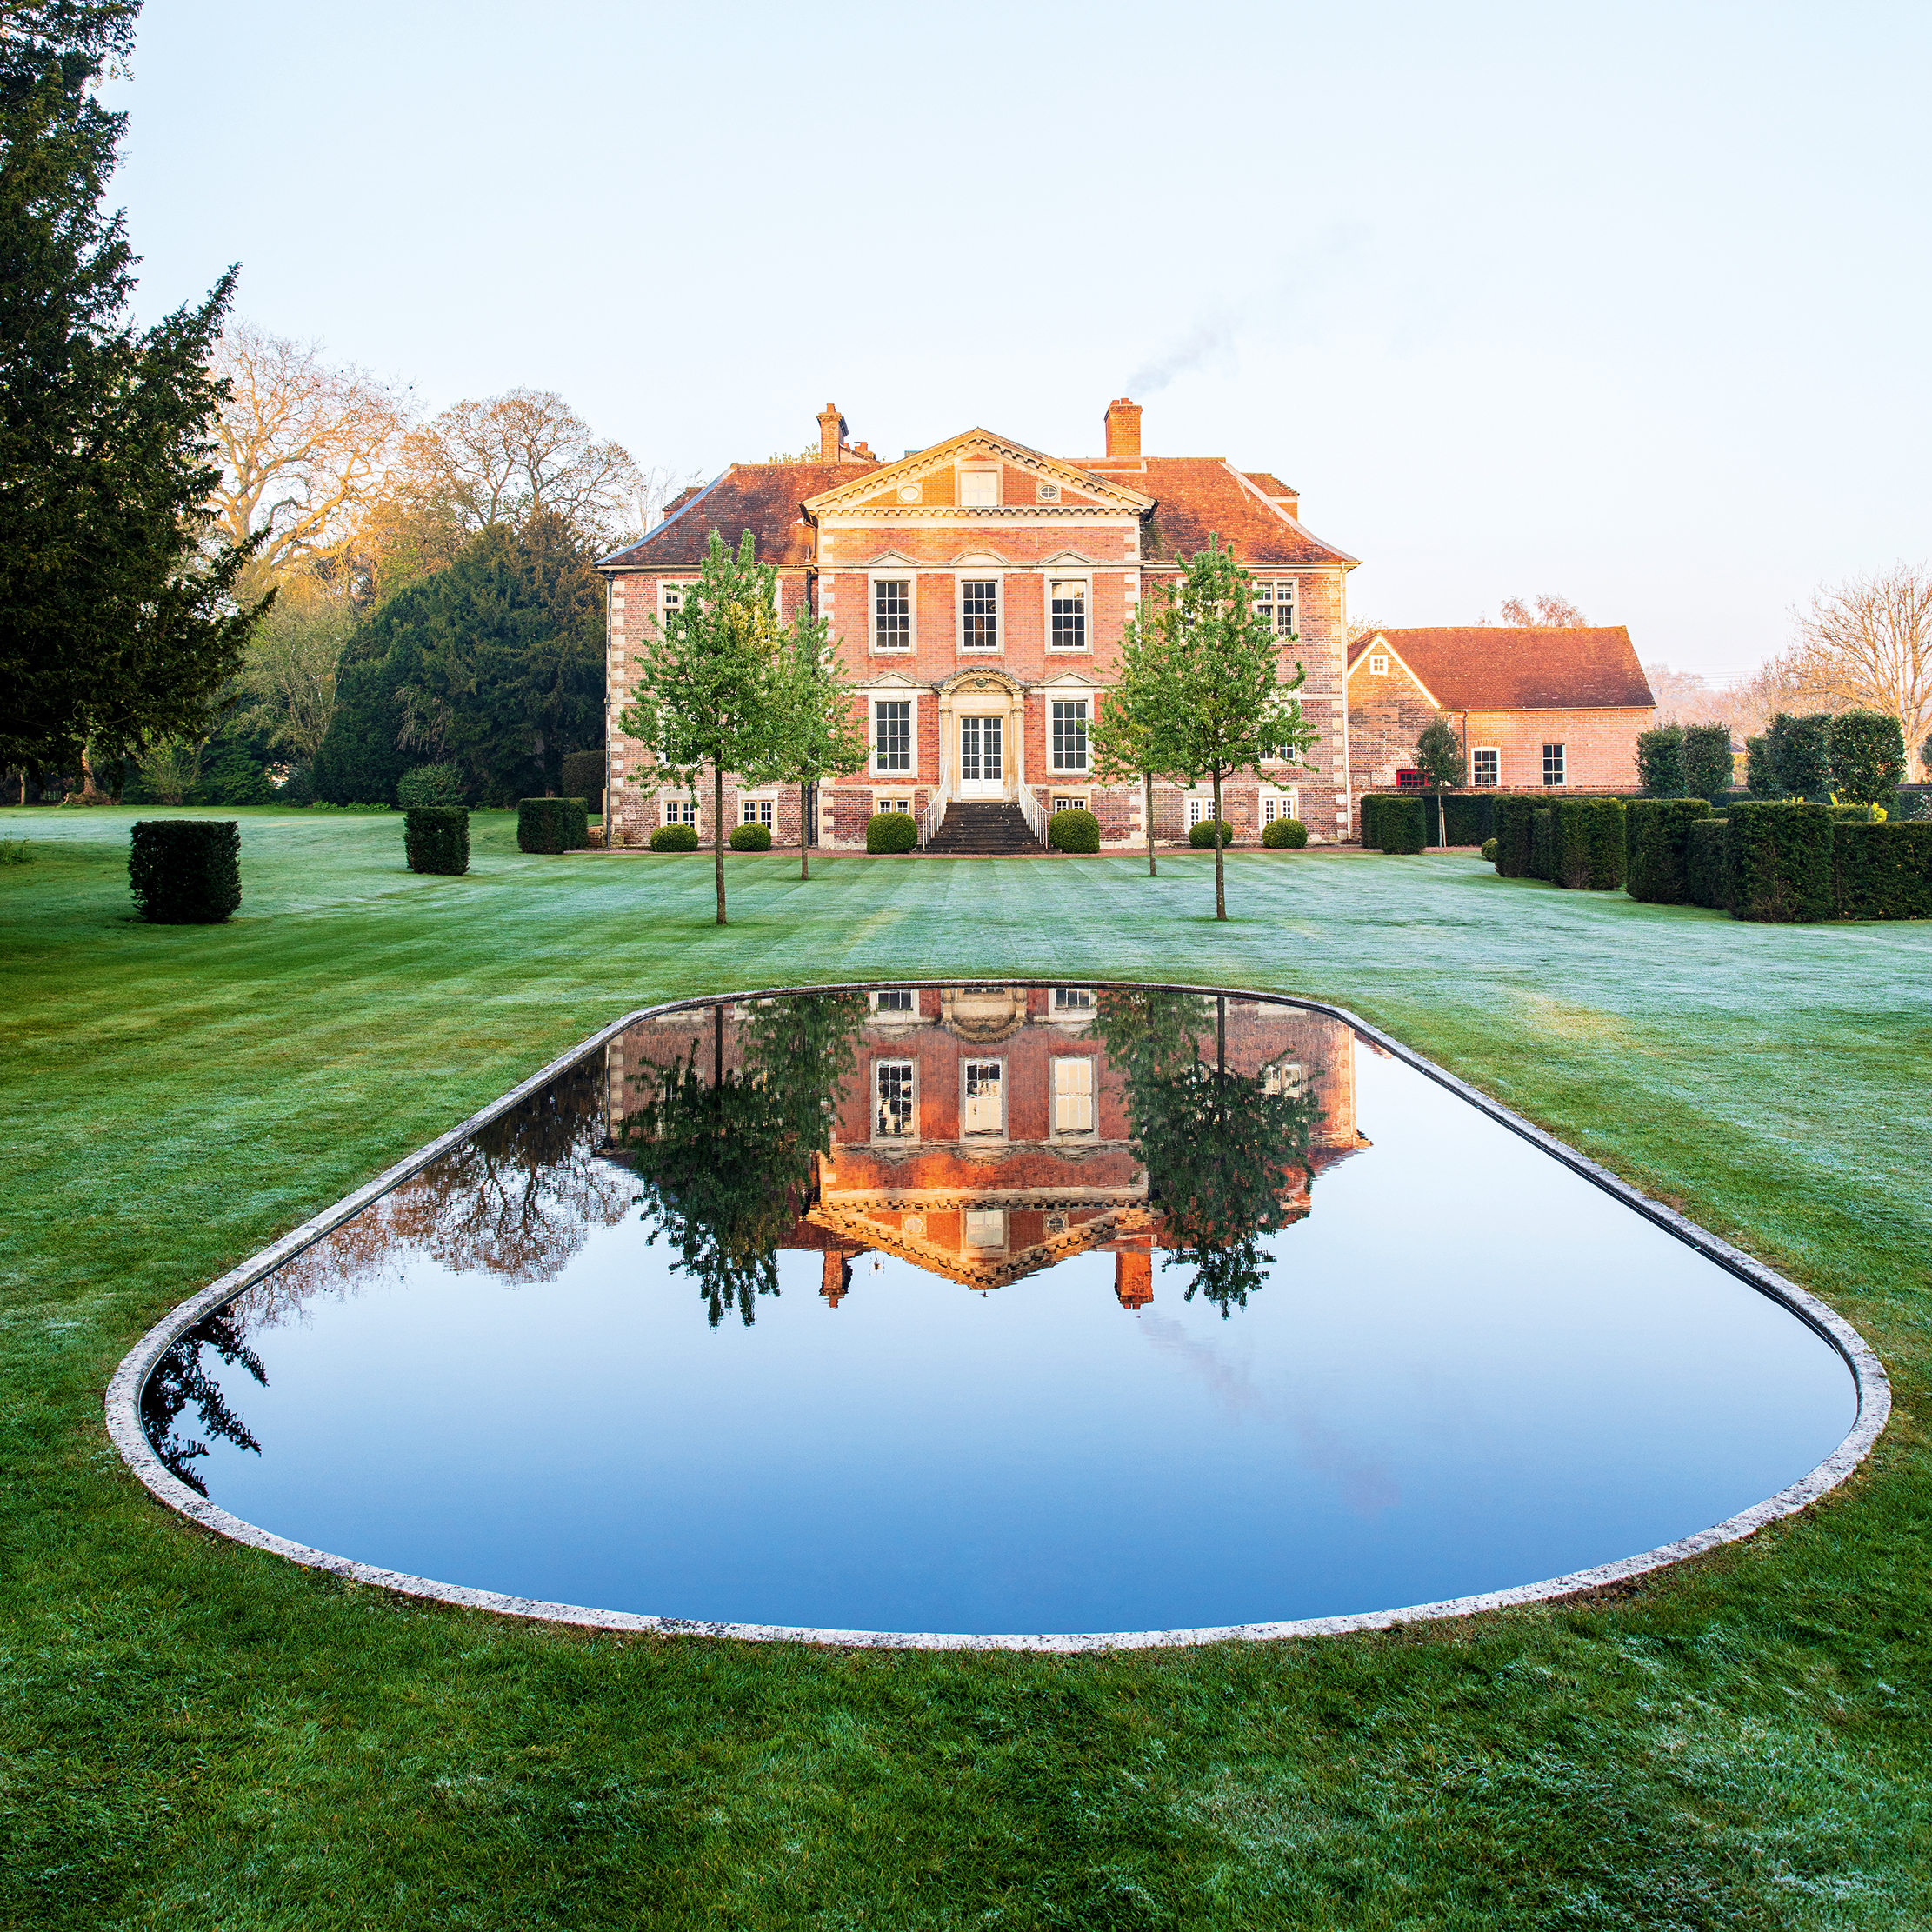 Urchfont Manor, Wiltshire: From local council facility to 'inspired contemporary creation' - Country Life